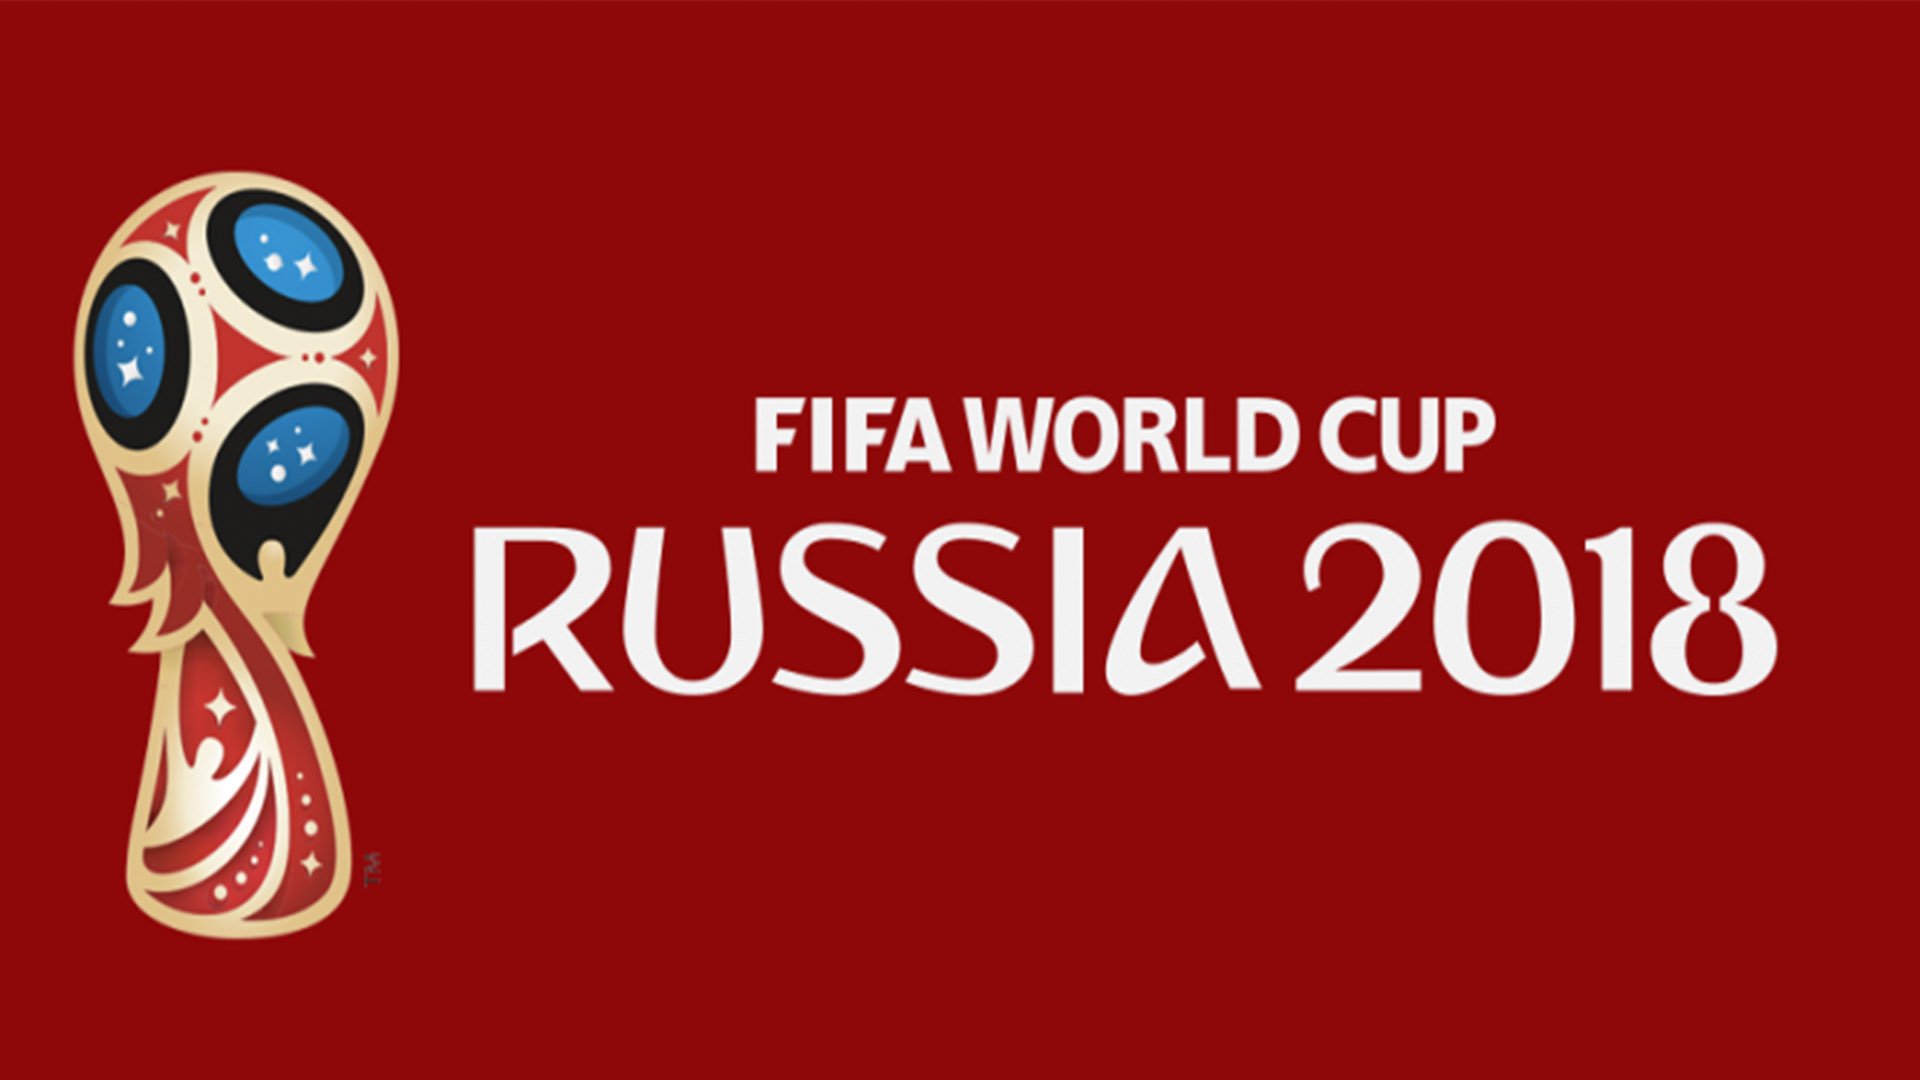 fifa world cup 2018 images & hd wallpapers | fifa 2018